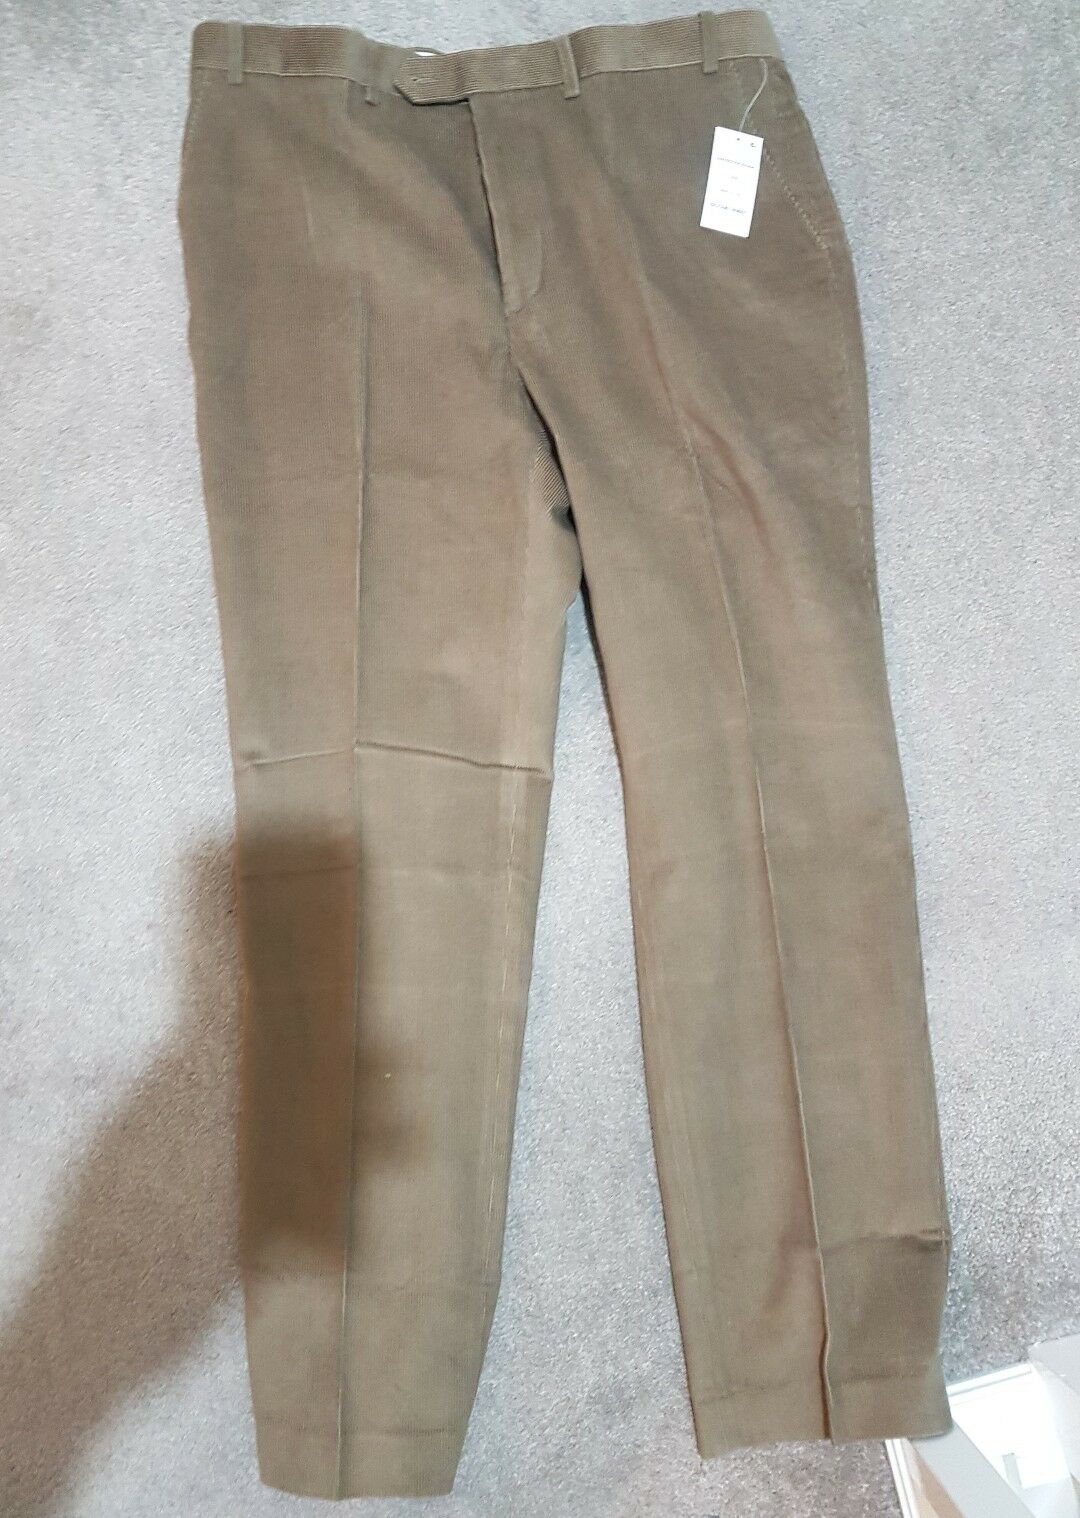 Ralph lauren mens corduroy Tan trouser  Pants 38  32